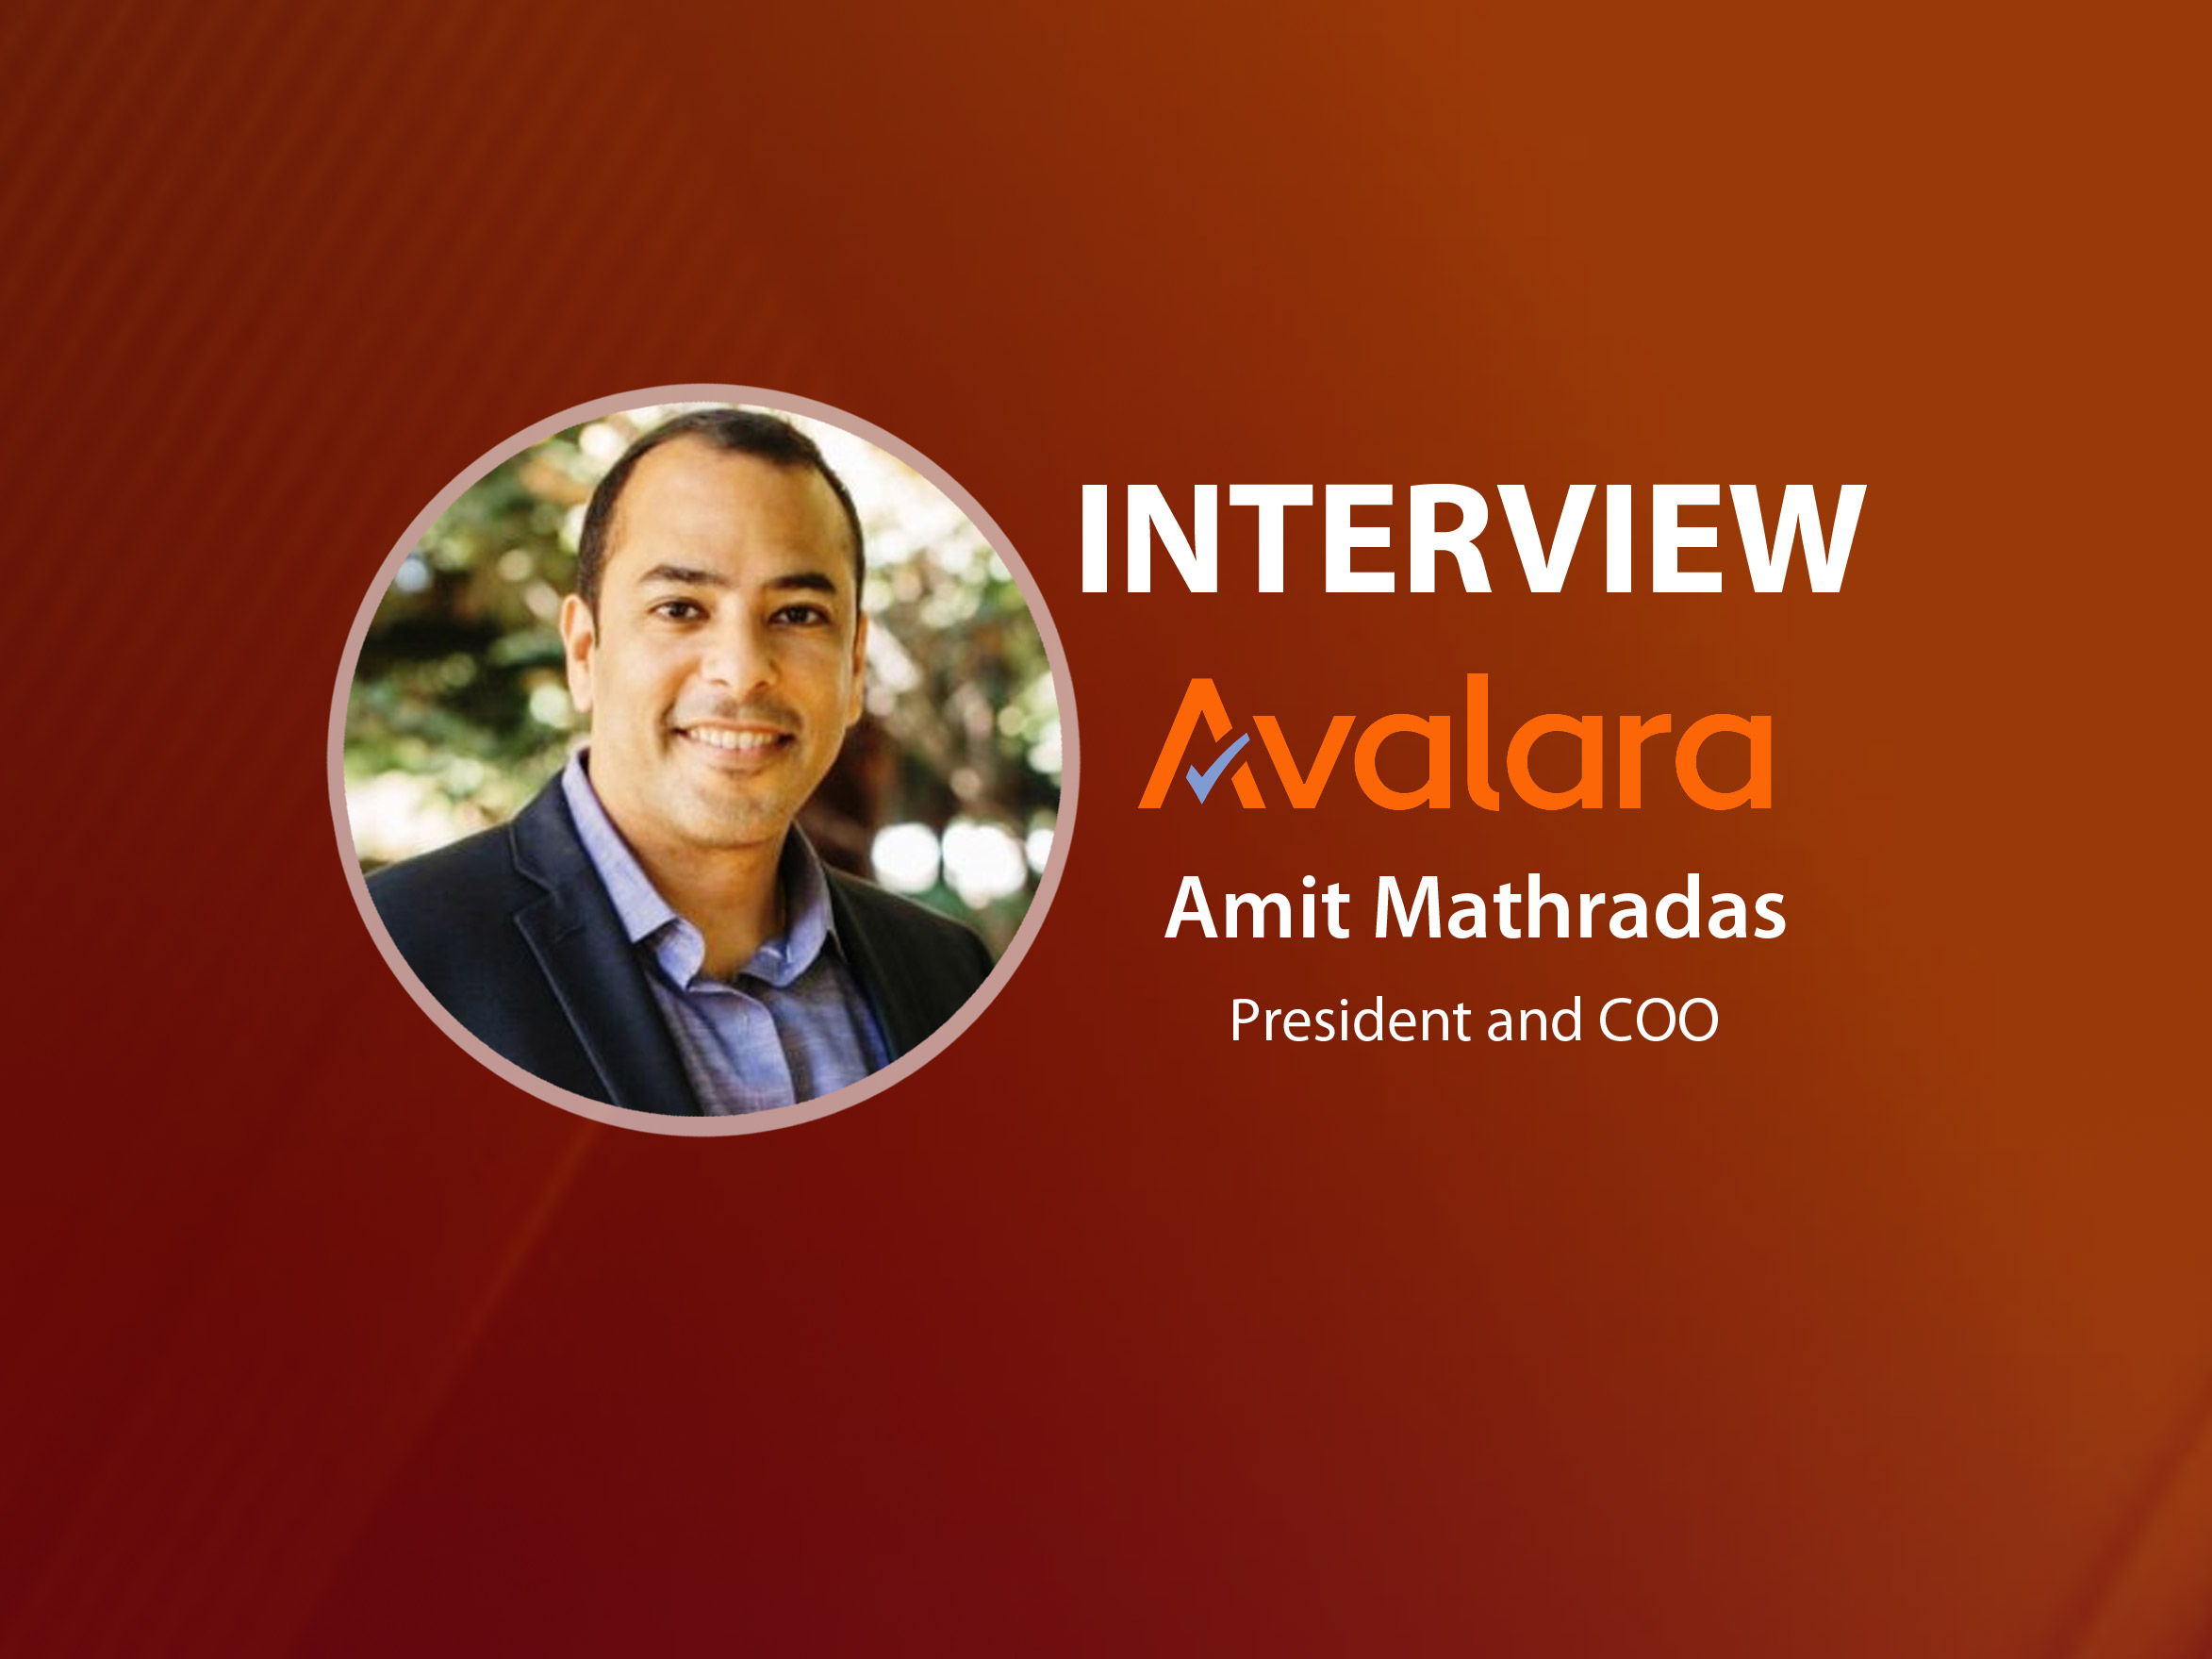 GlobalFintechSeries Interview with Amit Mathradas, President and COO at Avalara